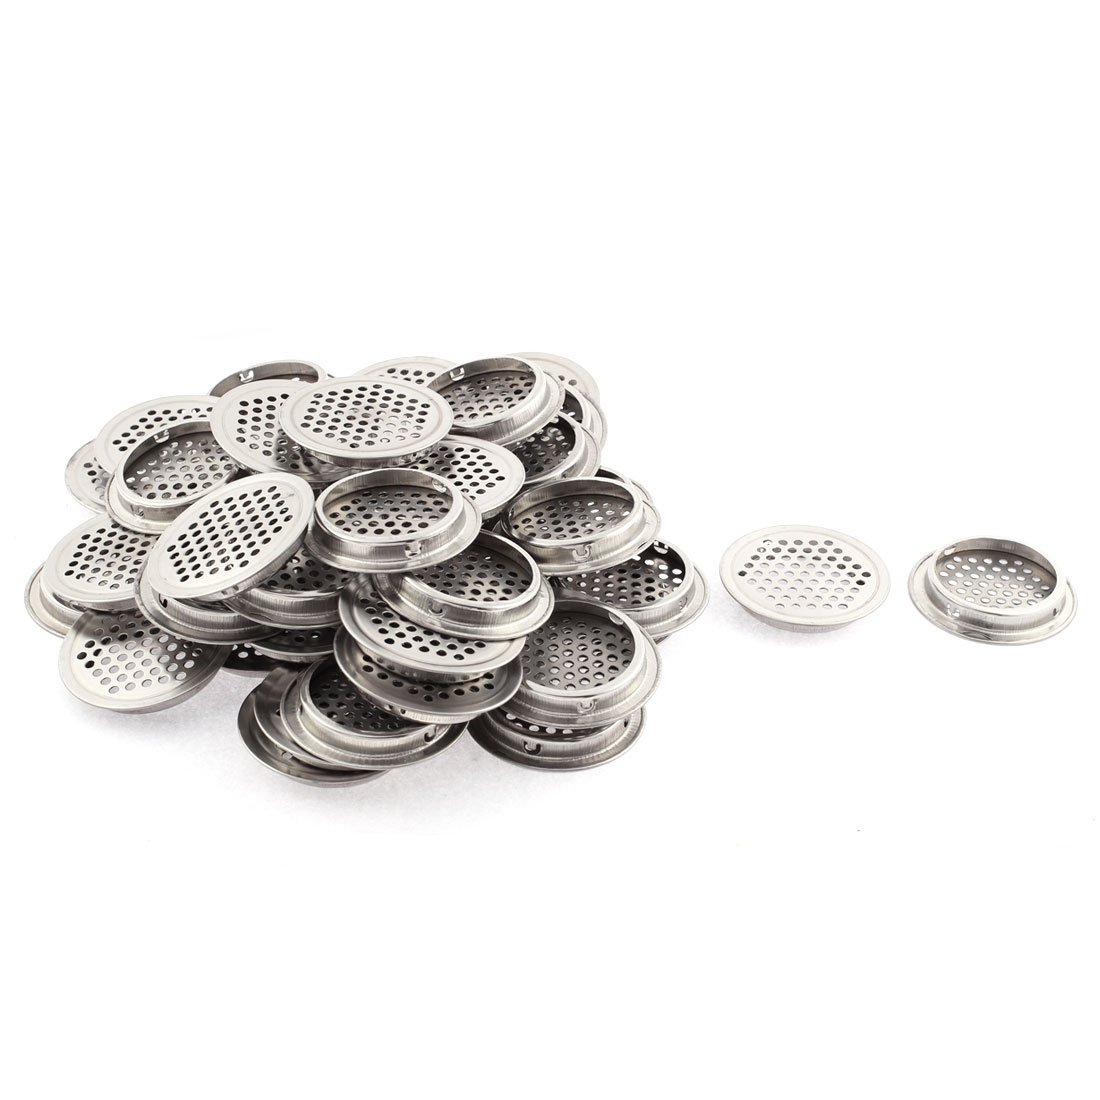 uxcell 65mm Flat Stainless Steel Cabinet Mesh Hole Air Vent Louver 50pcs